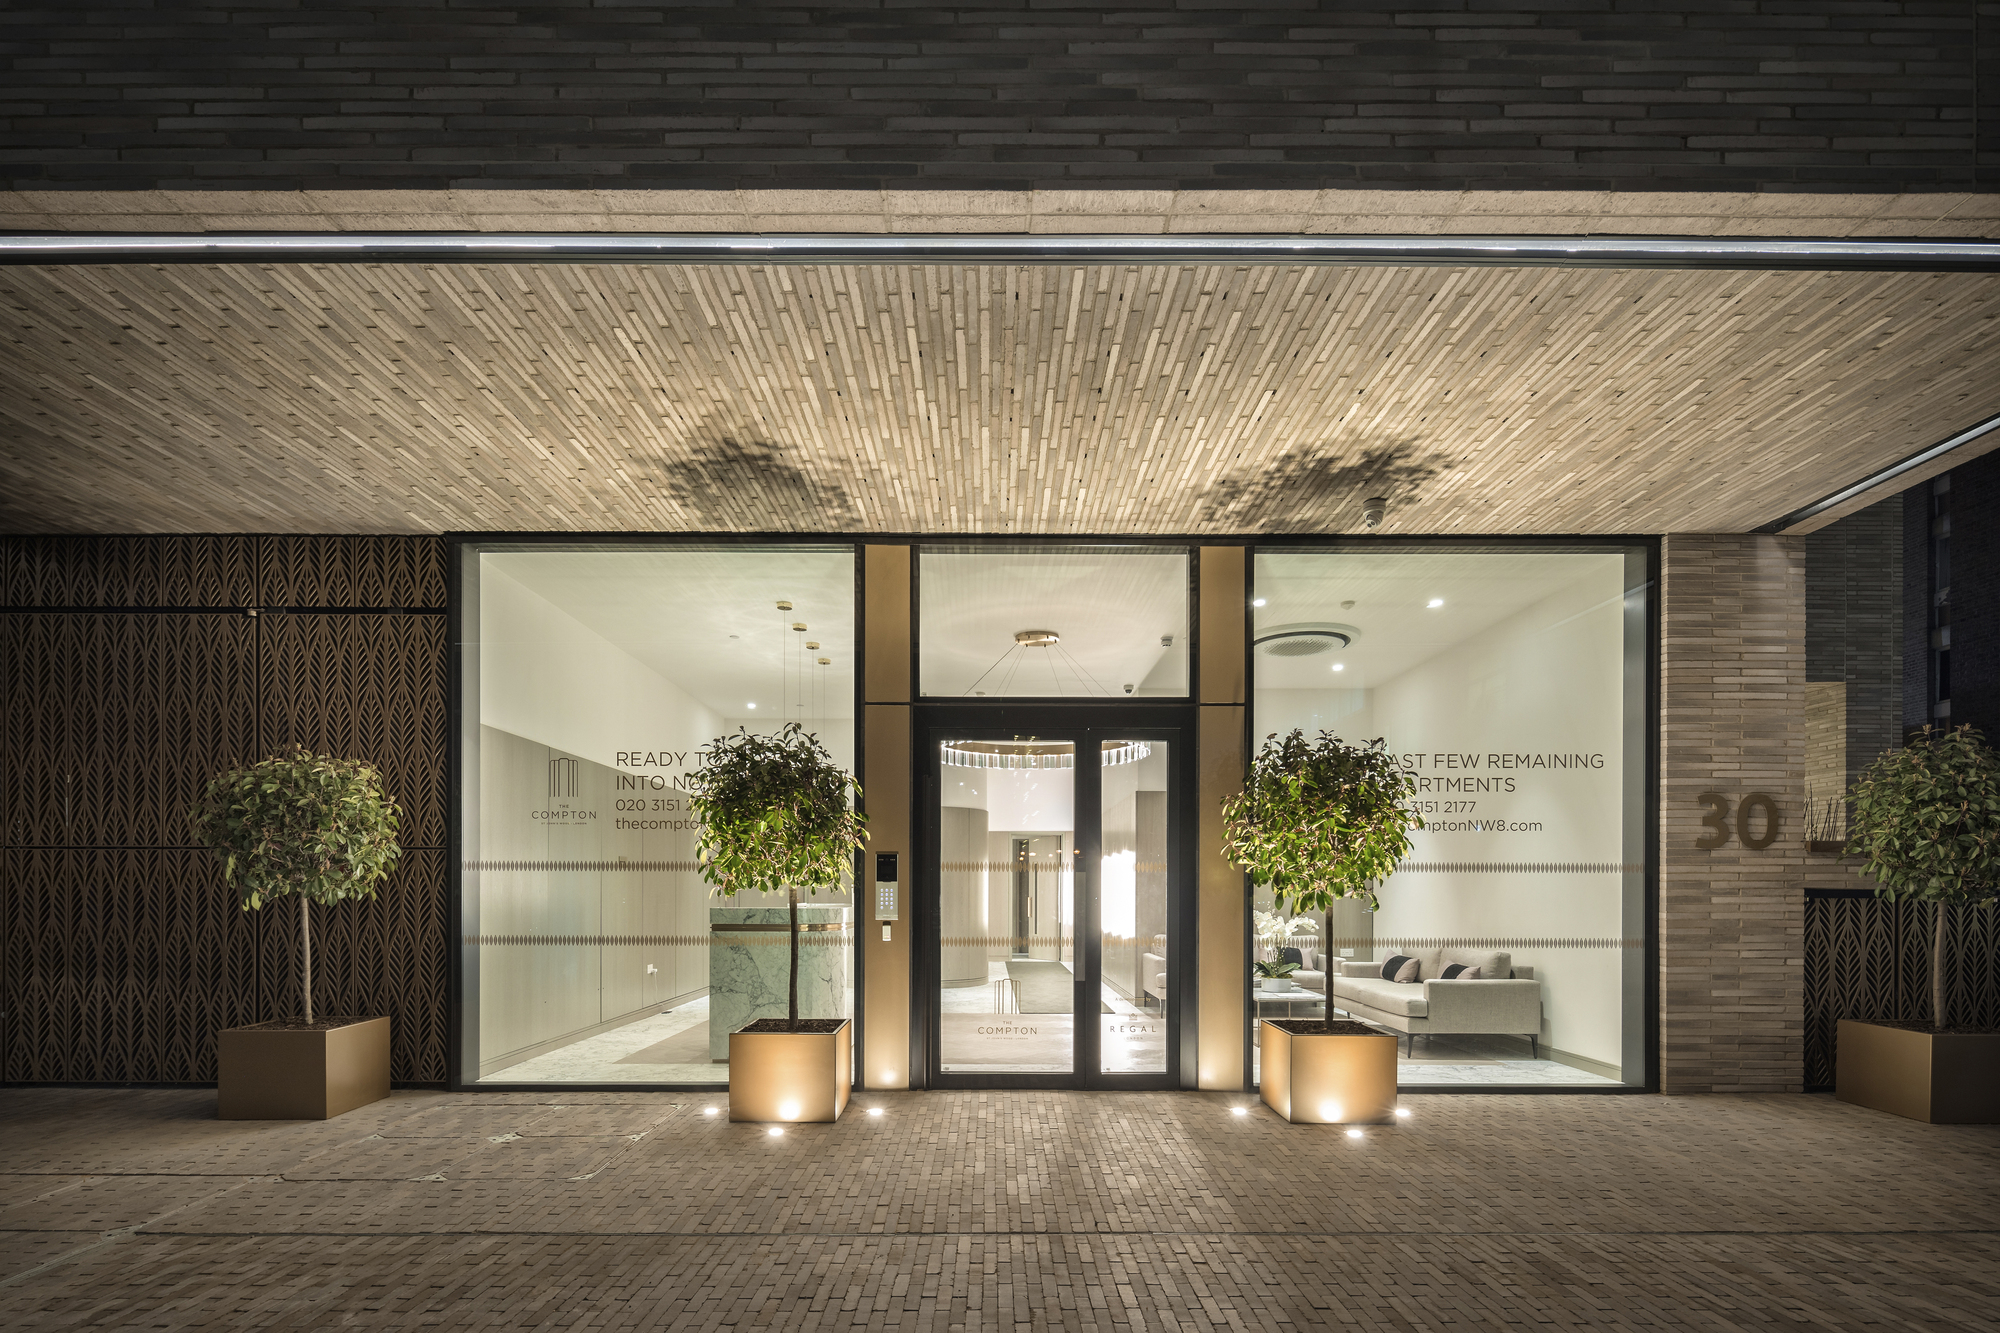 Brick Ceilings Create New Architectural Possibilities | ArchDaily